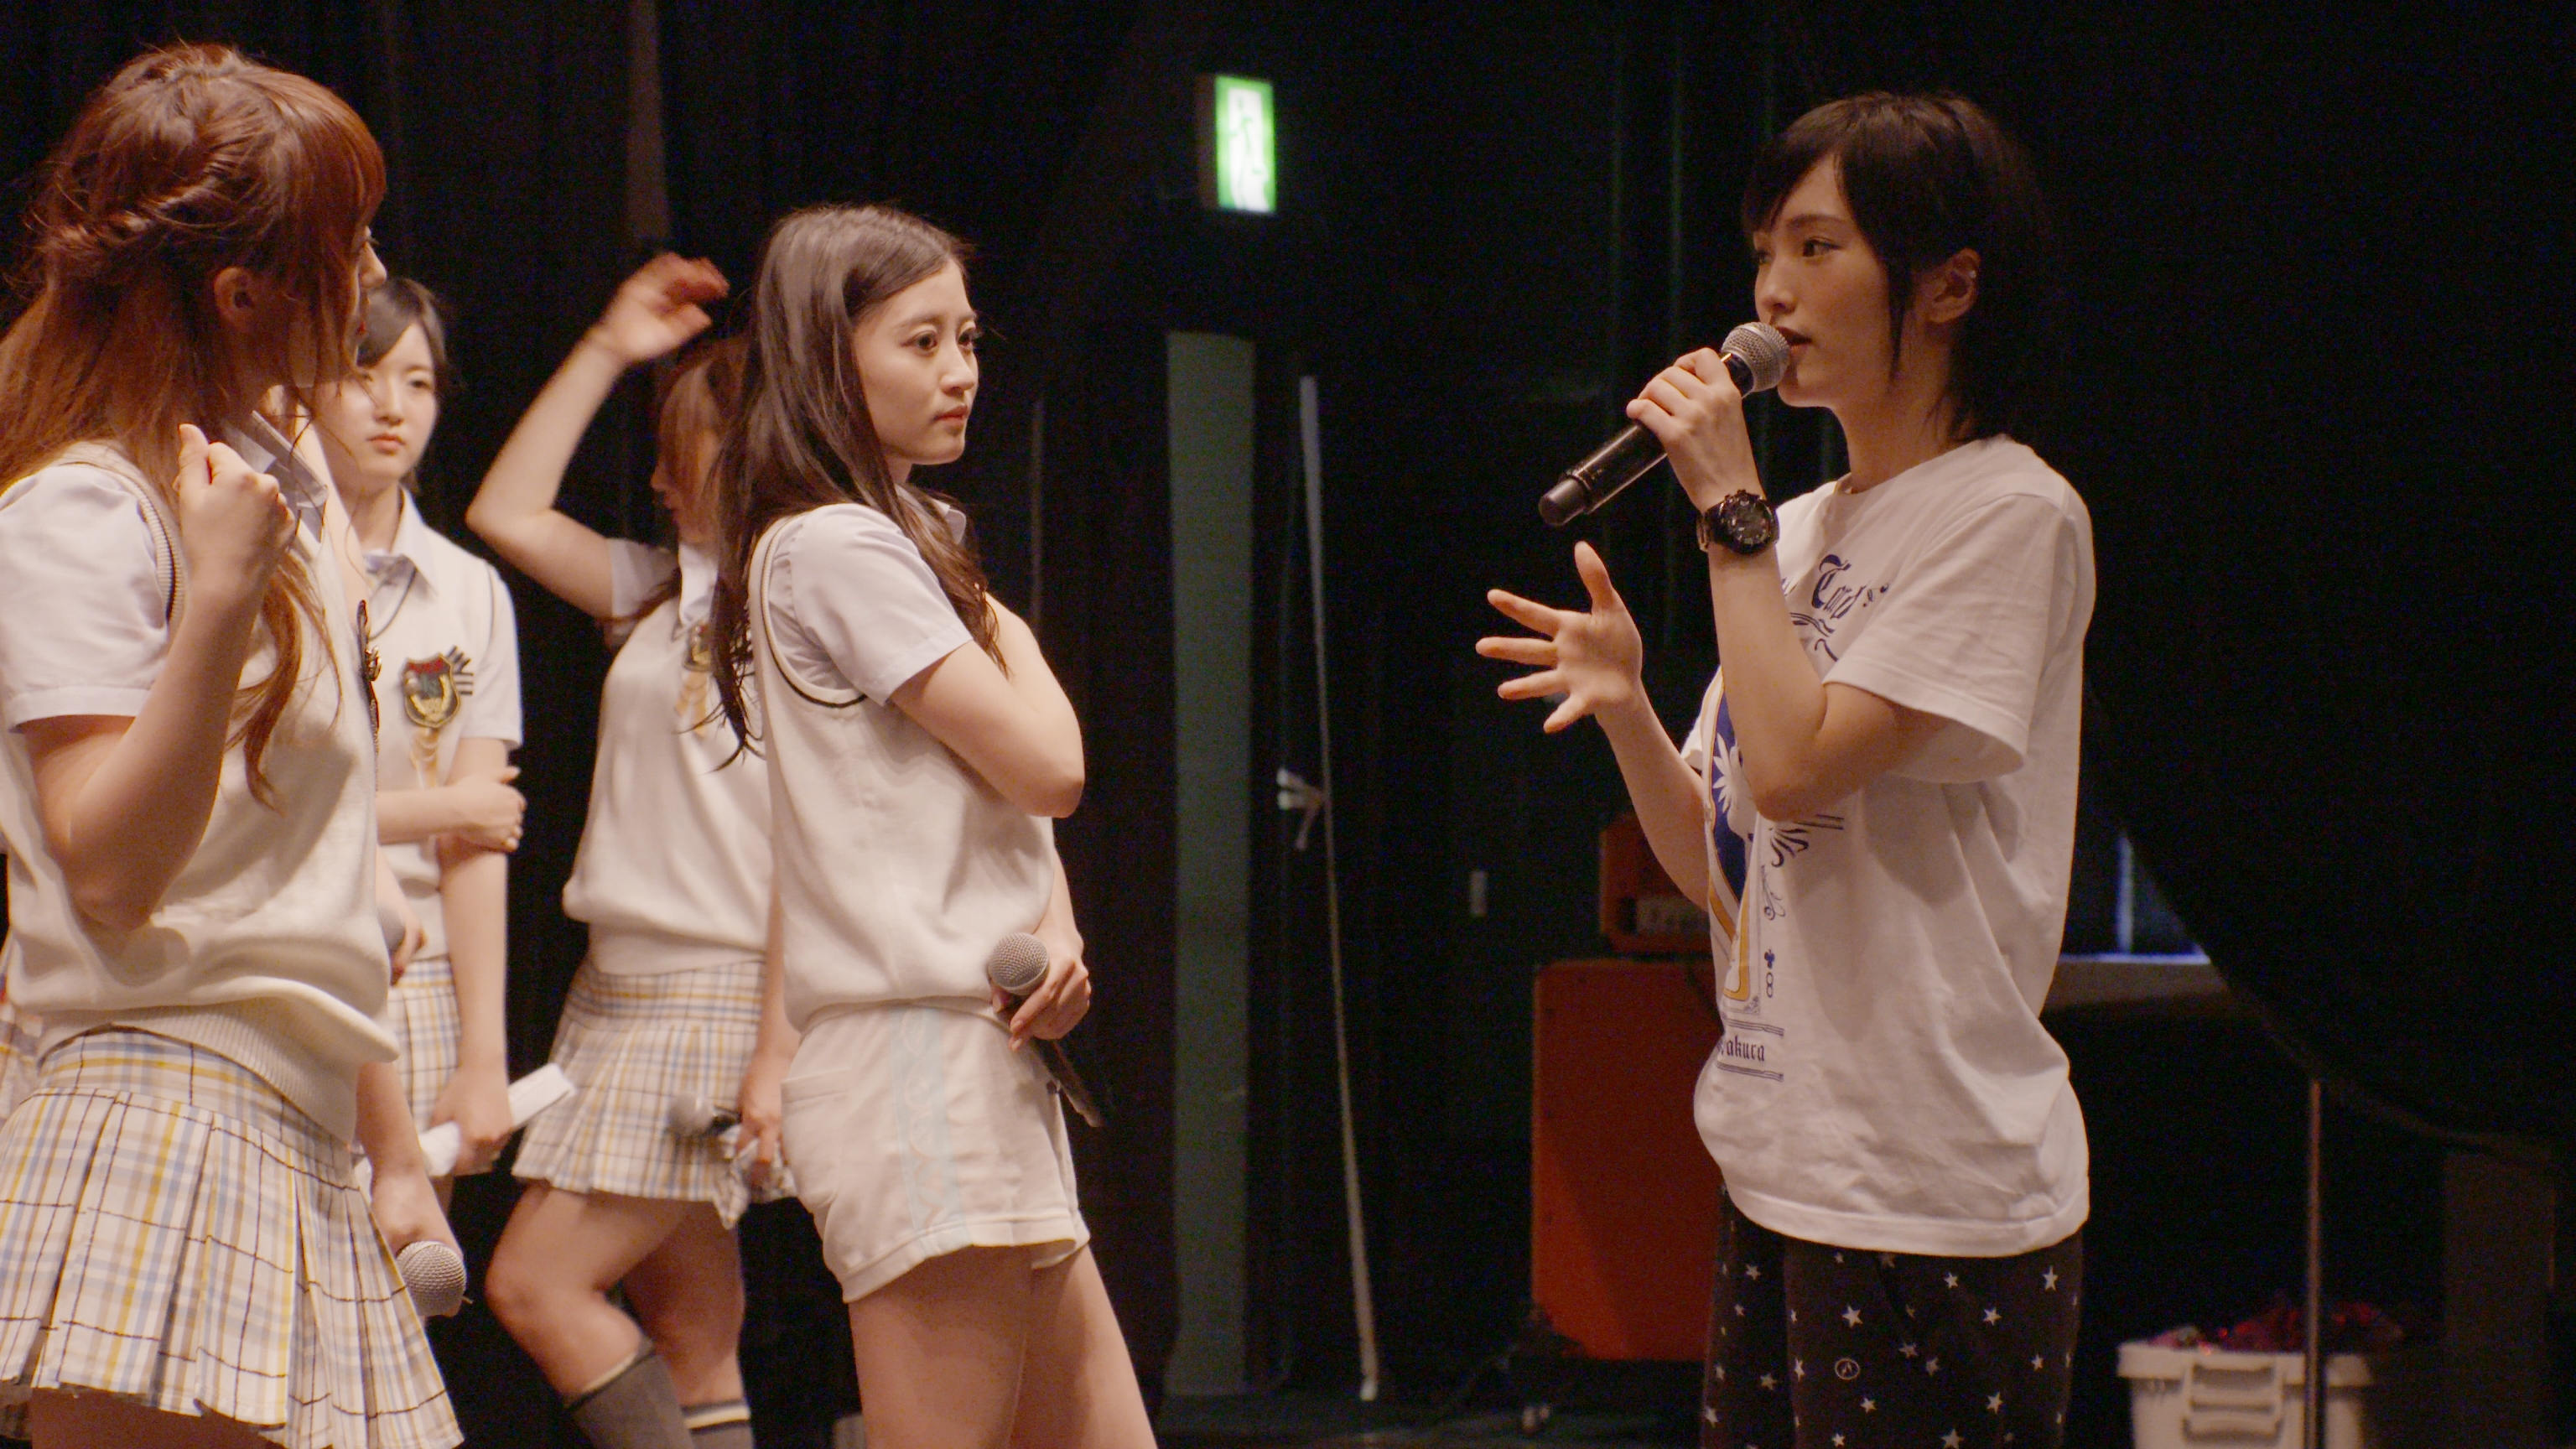 Raise Your Arms and Twist Documentary of NMB48 - Extrait. Toho/NHK entreprises